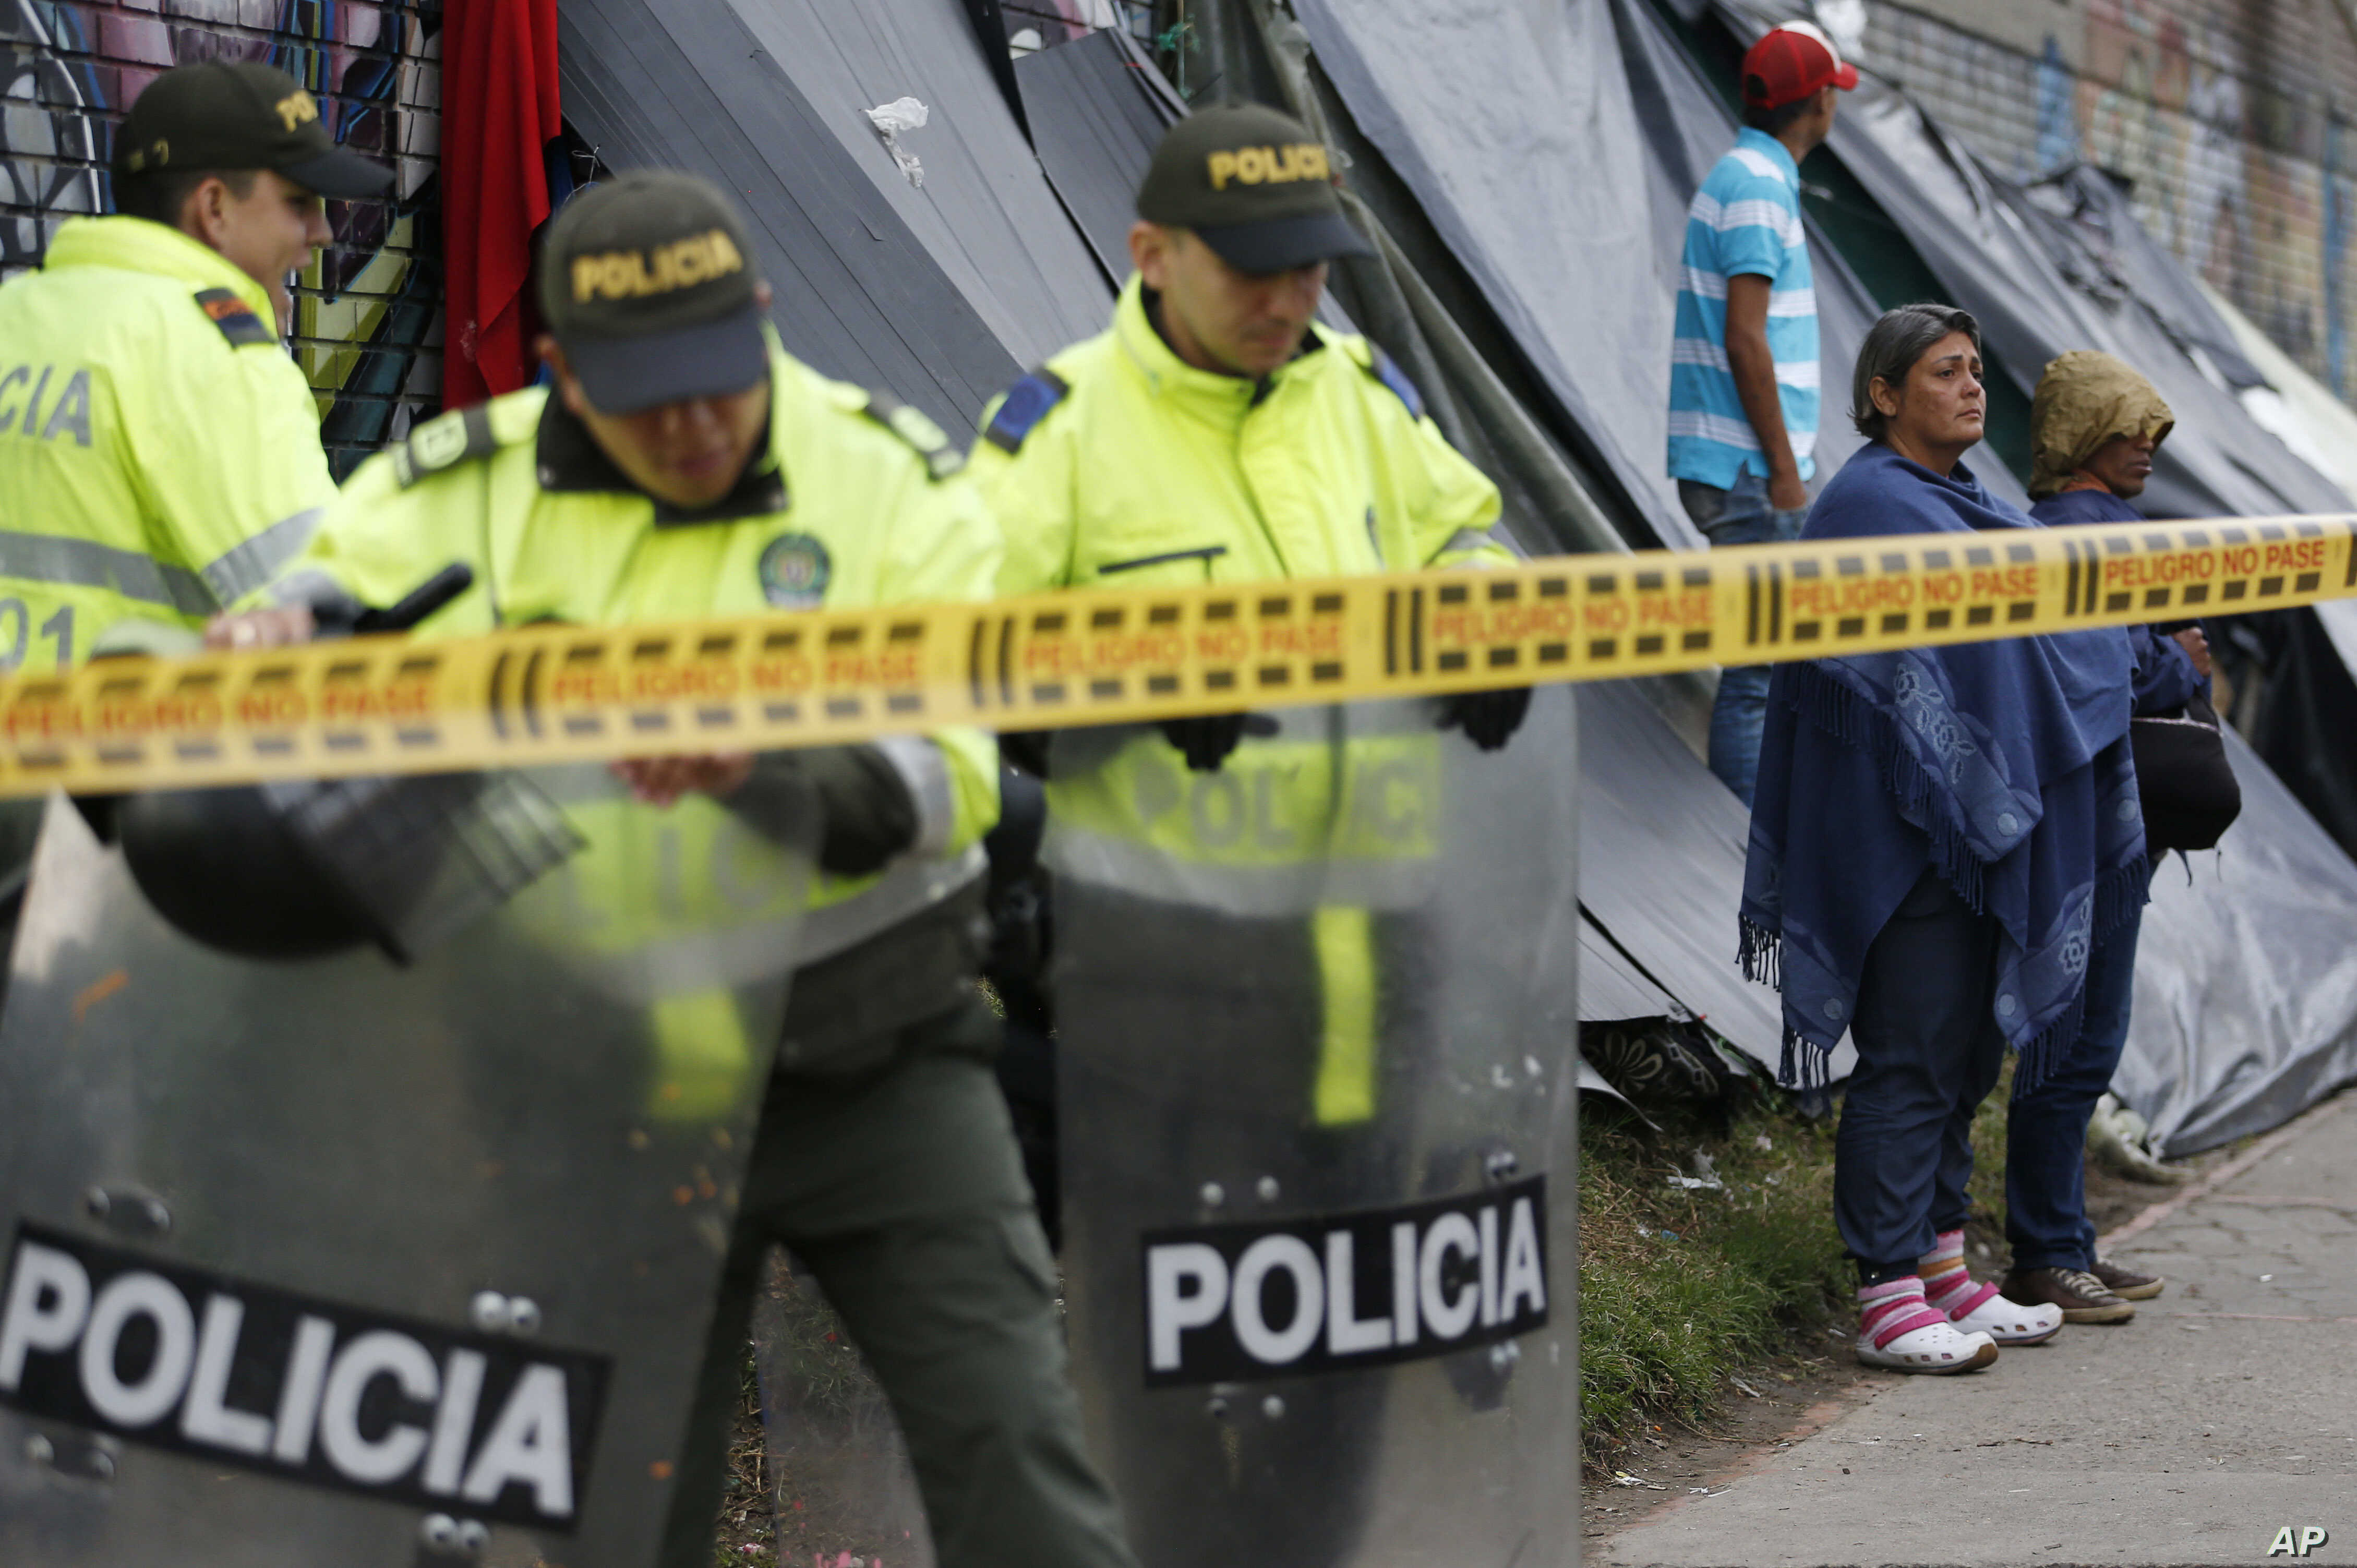 Police stand guard at a makeshift migrant settlement near the main bus terminal in Bogota, Colombia, Nov. 13, 2018.